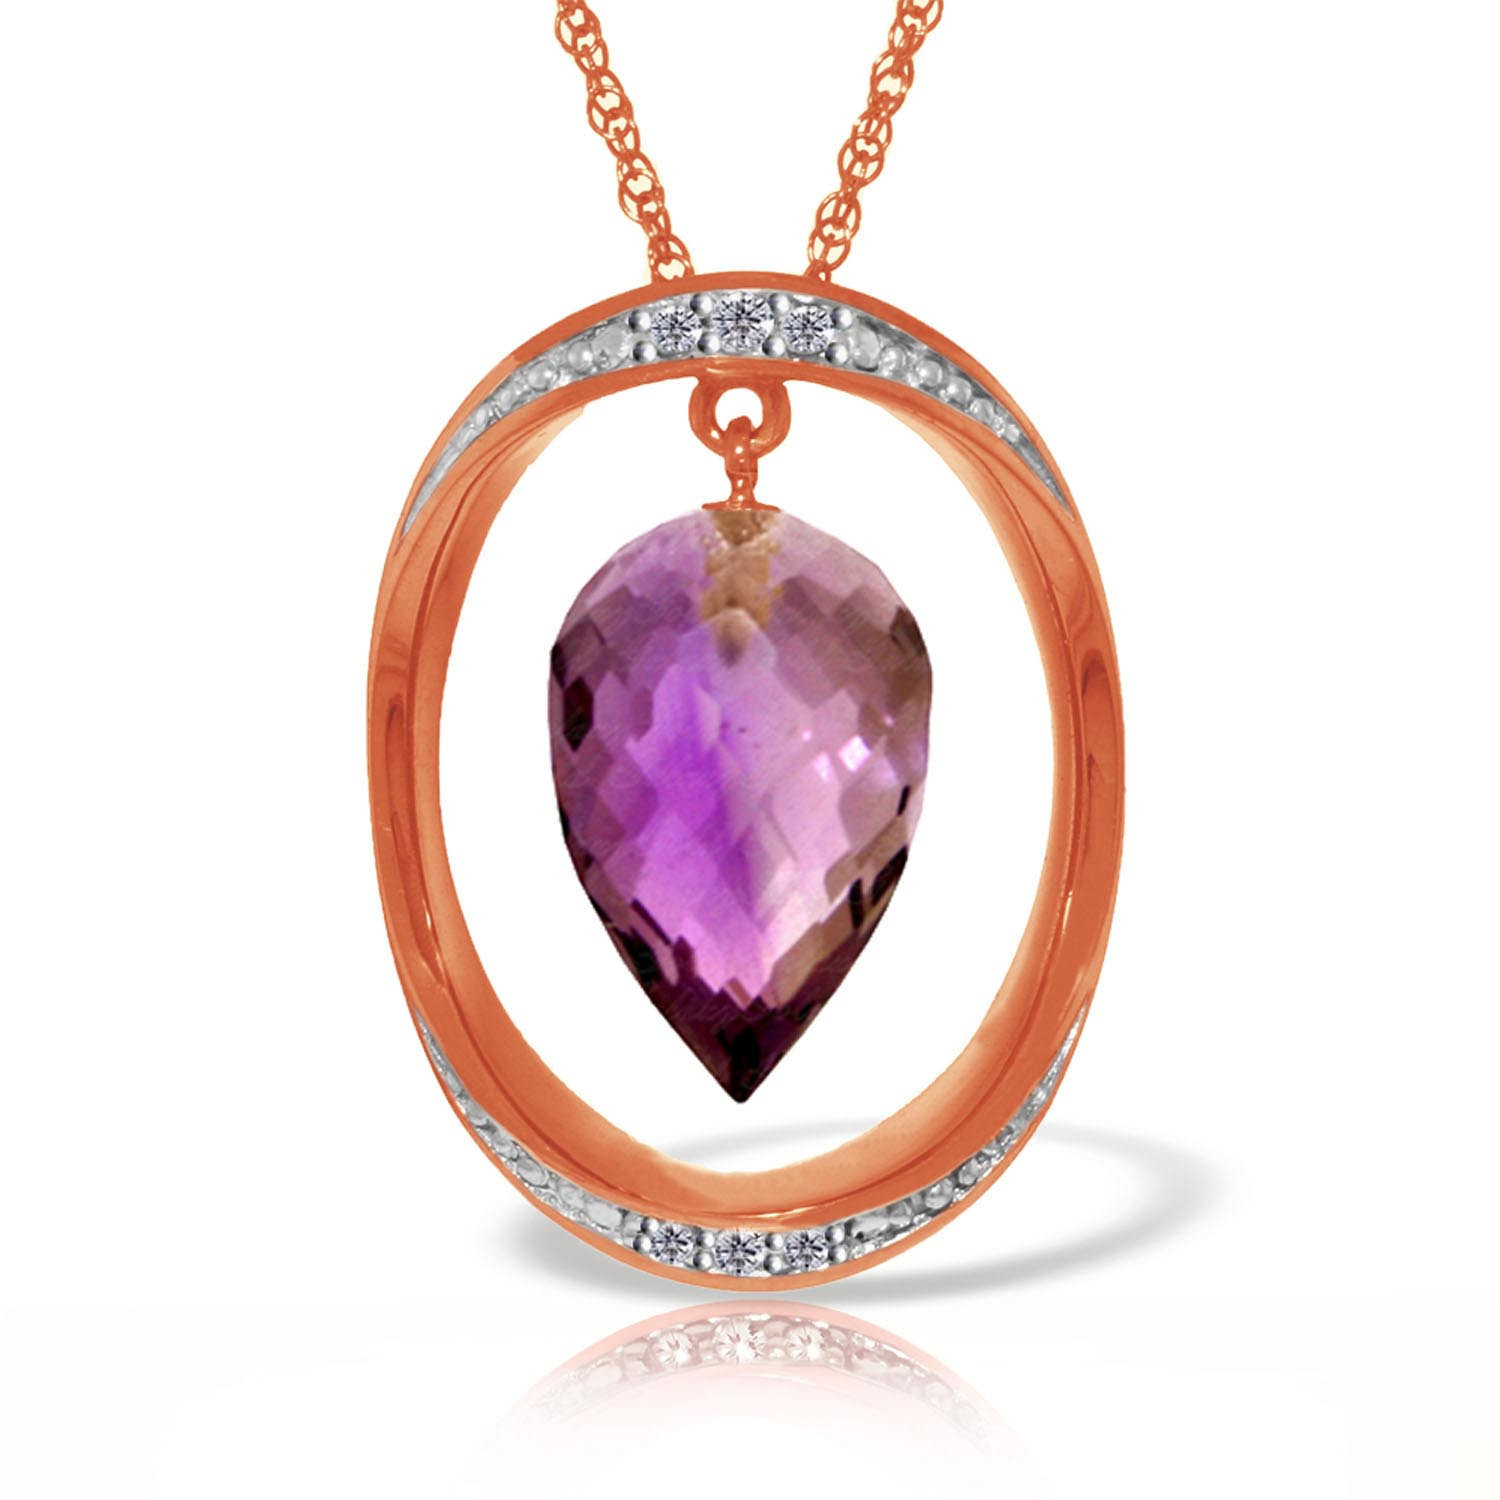 Amethyst & Diamond Drop Pendant Necklace in 9ct Rose Gold